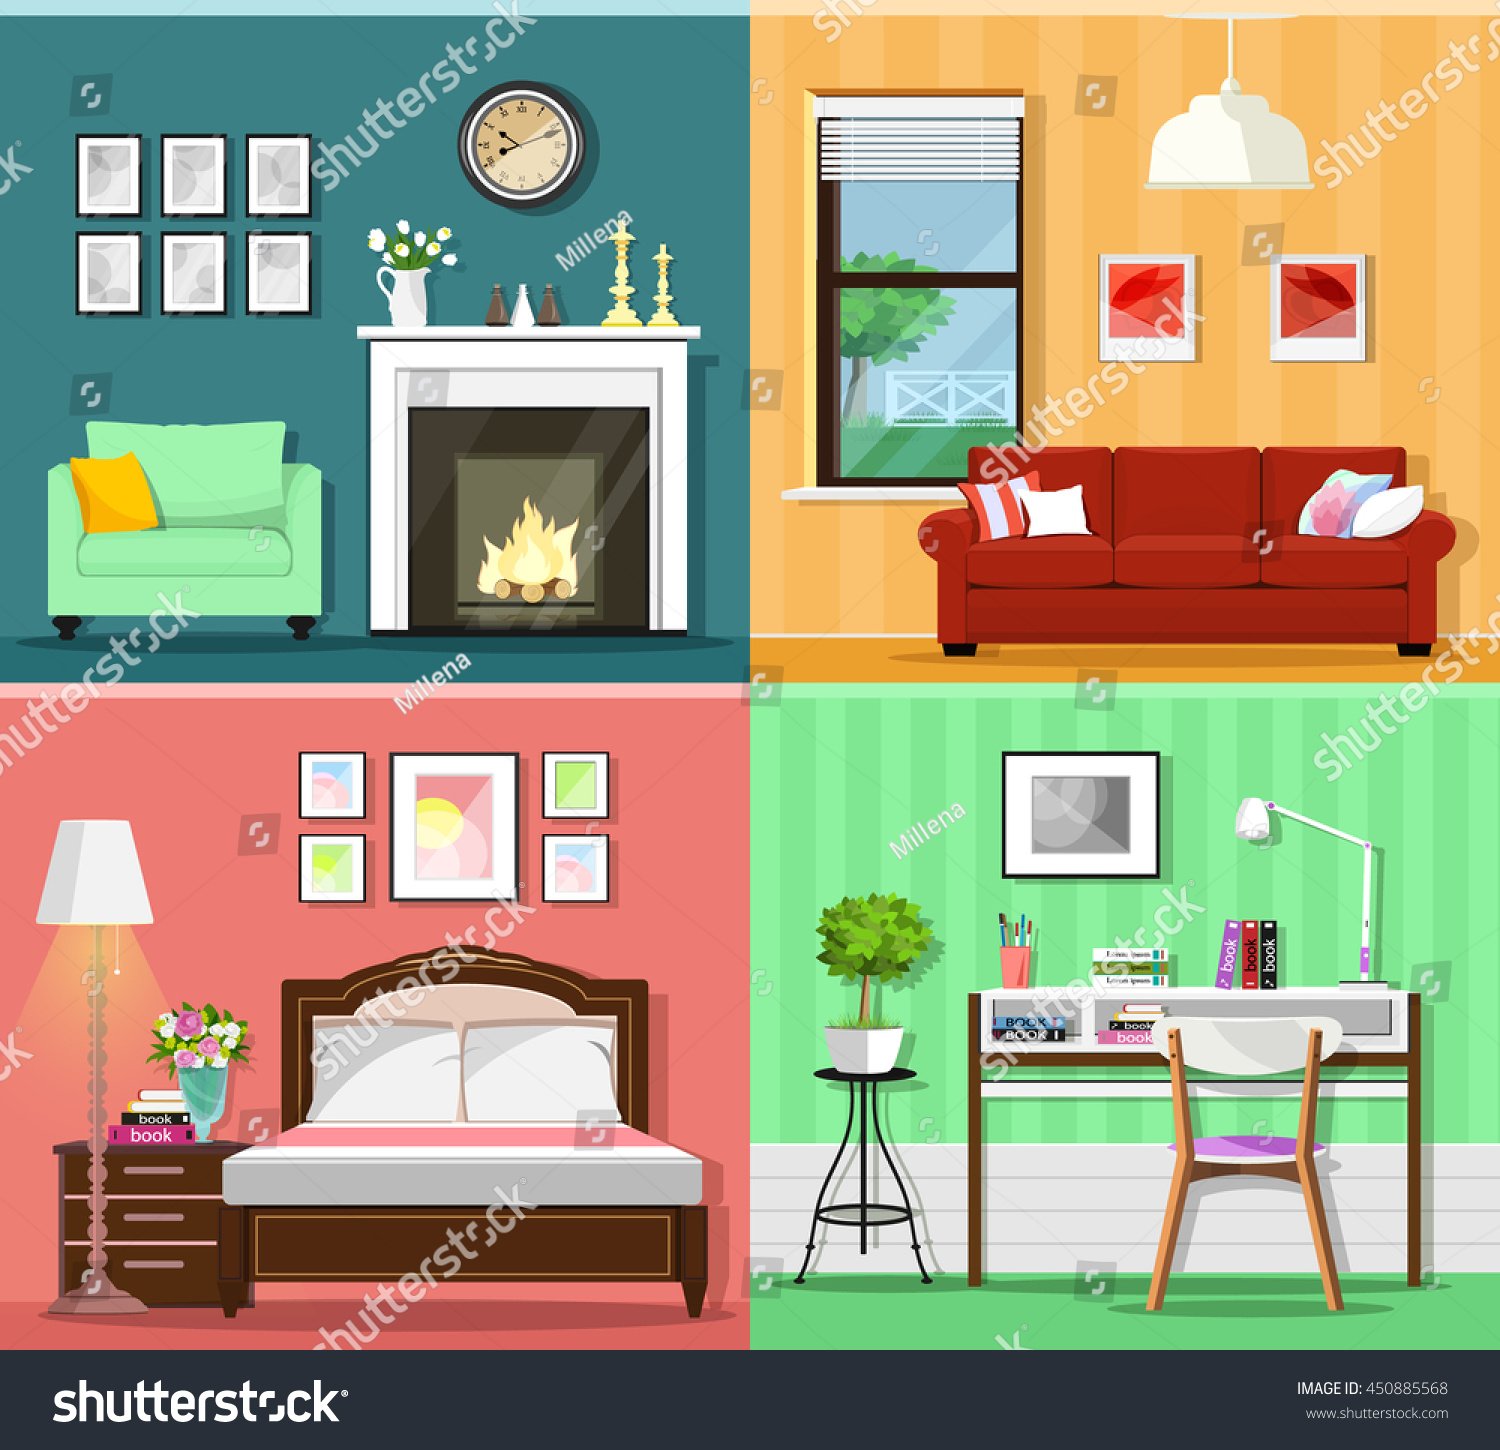 Furniture Ideas For Living Room Stock Vector: Set Colorful Graphic Room Interiors Furniture Stock Vector